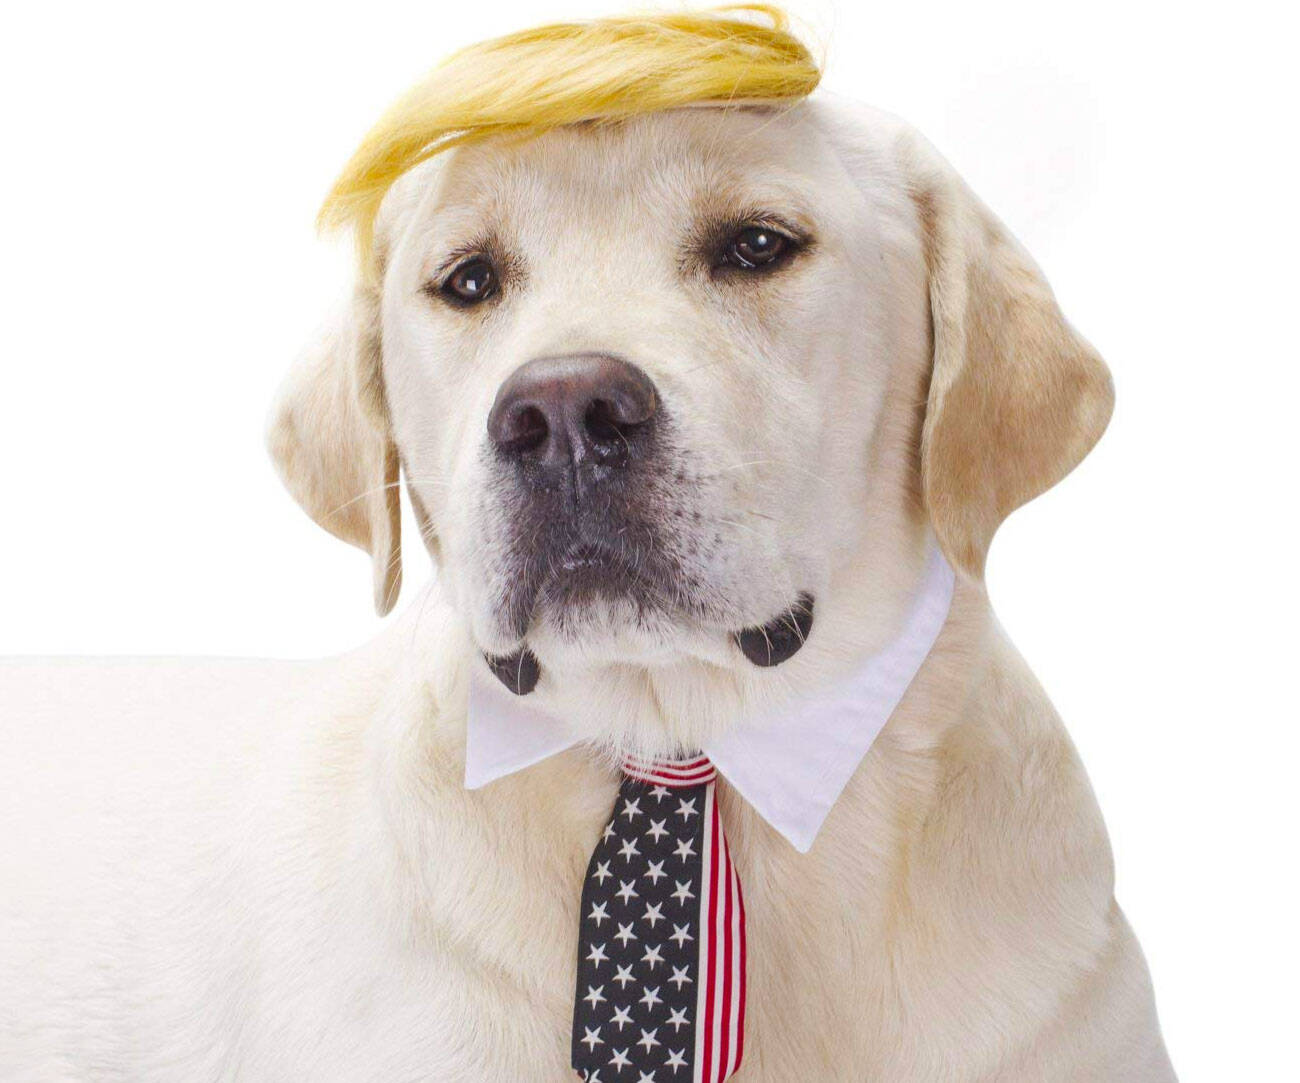 Donald Trump Dog Costume - http://coolthings.us